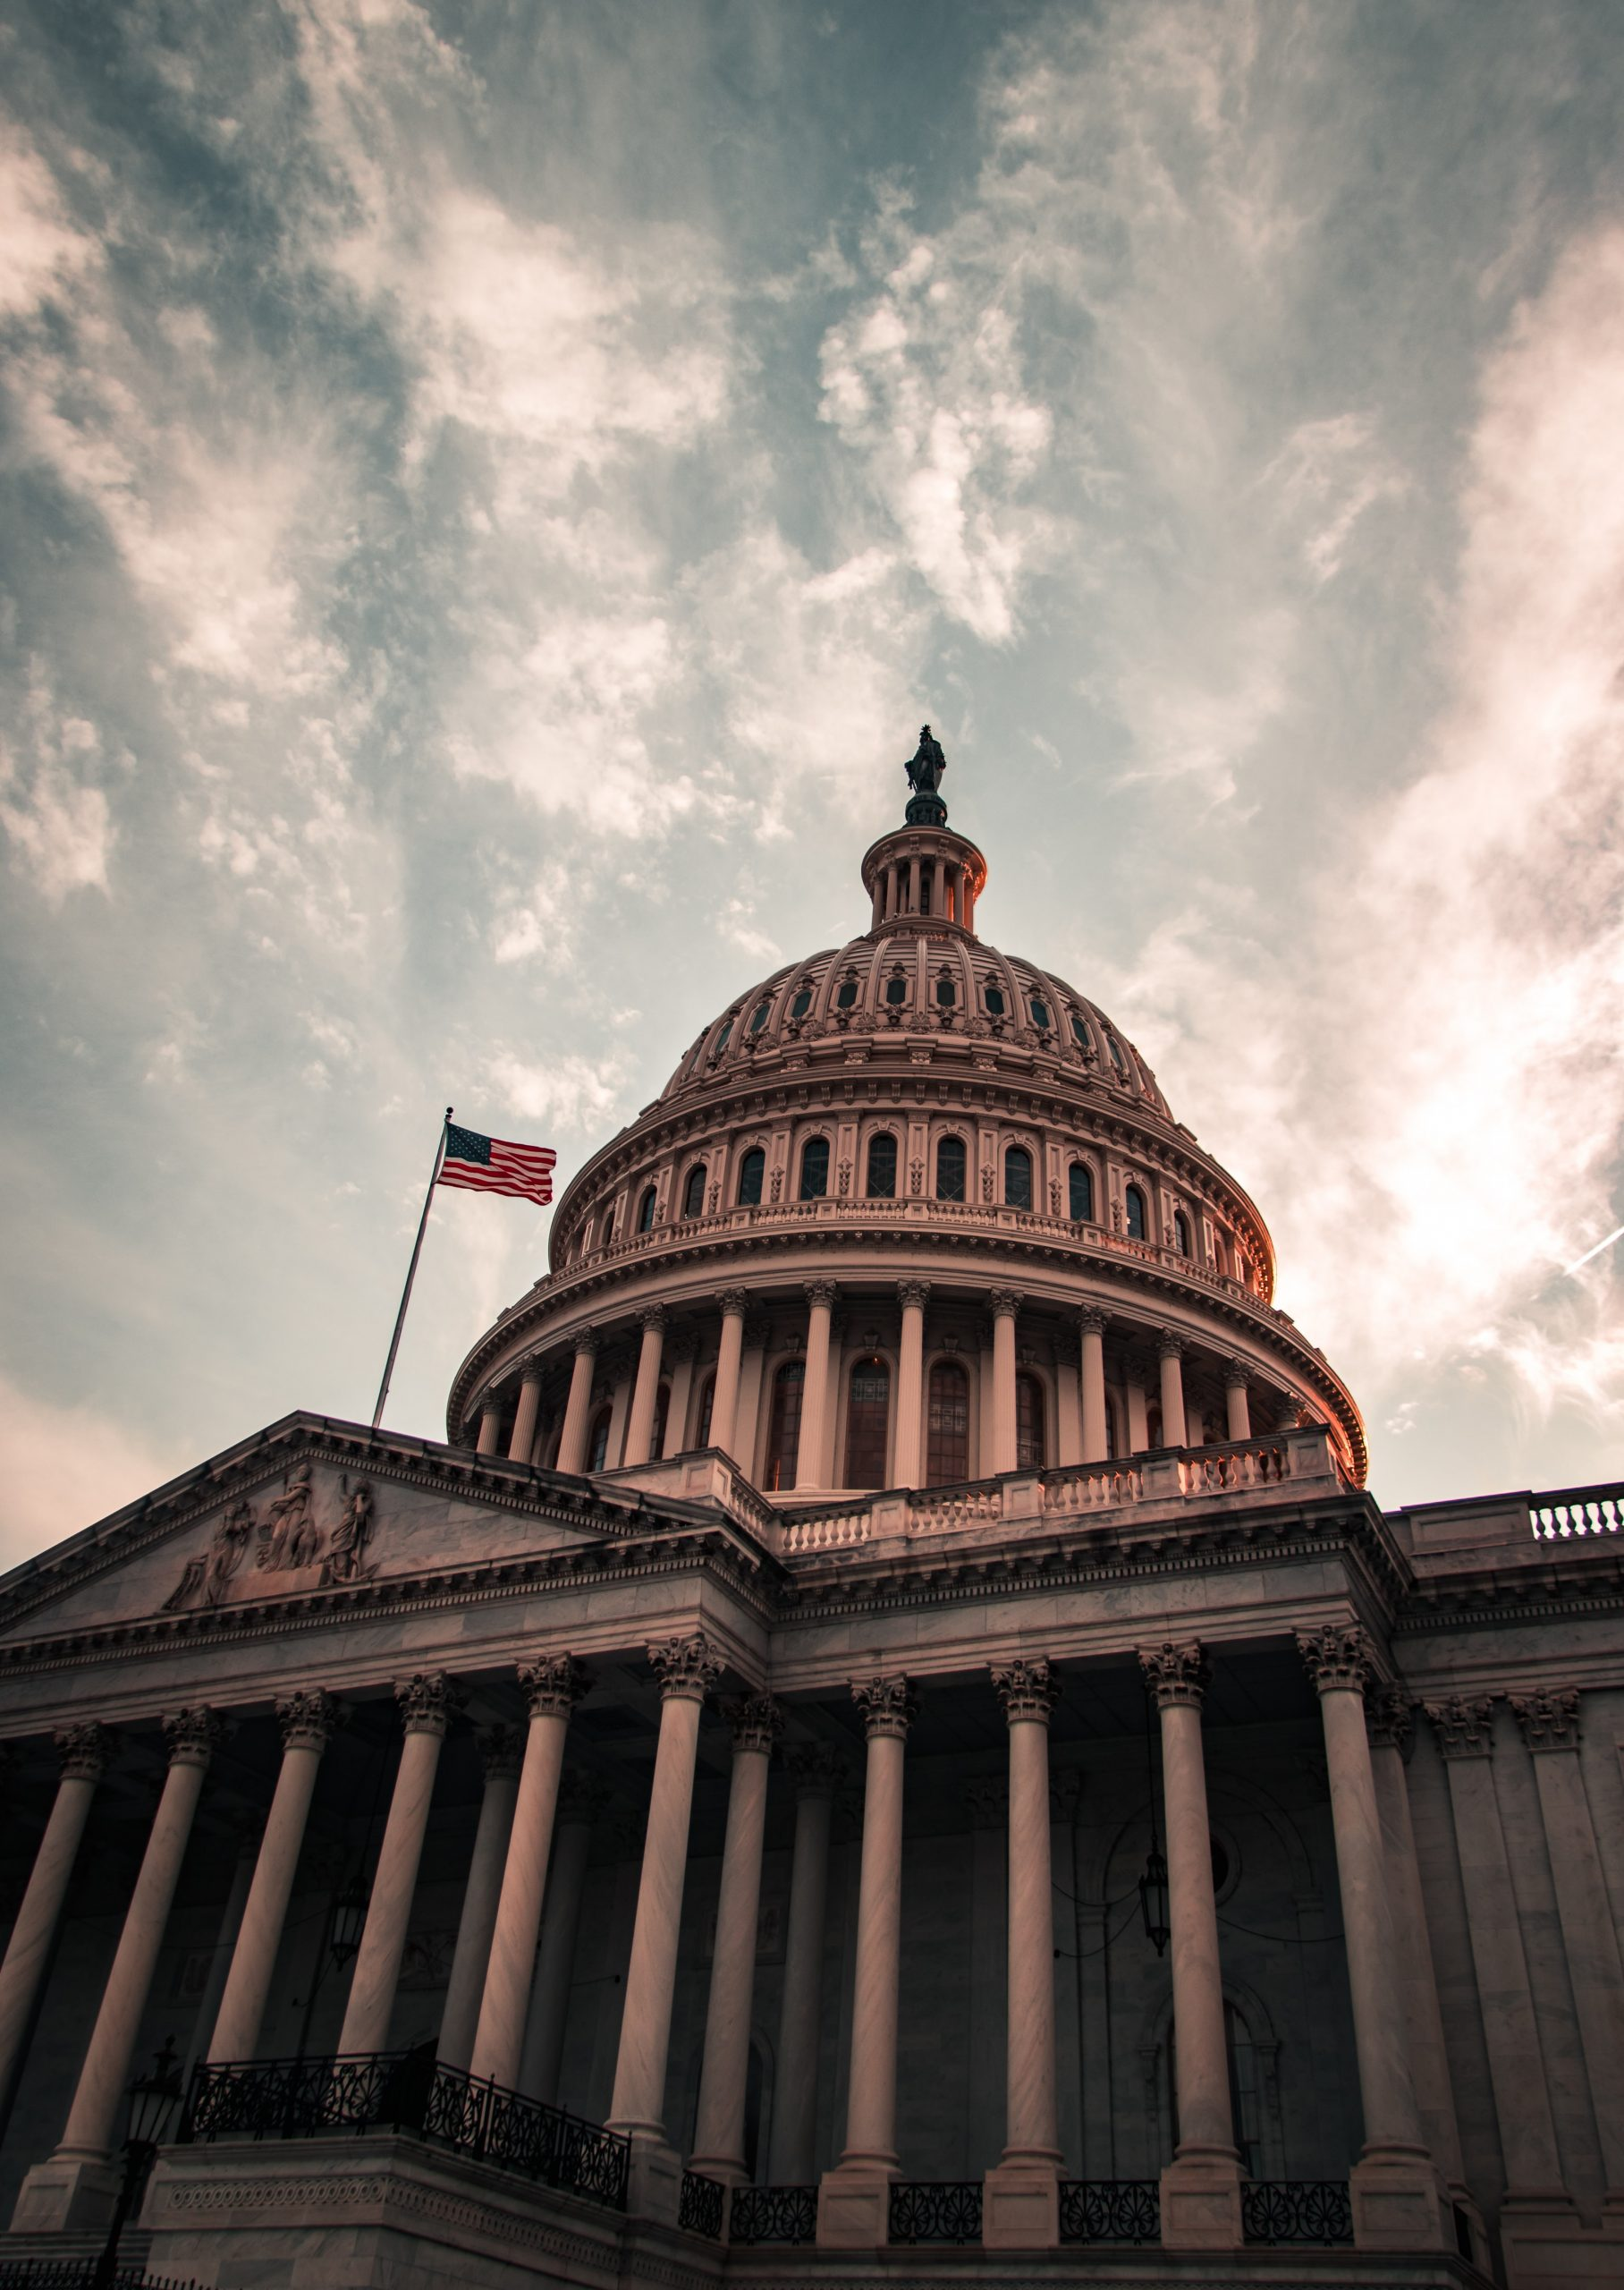 Government Affairs Public Policy Photo by Kyle Mills on Unsplash